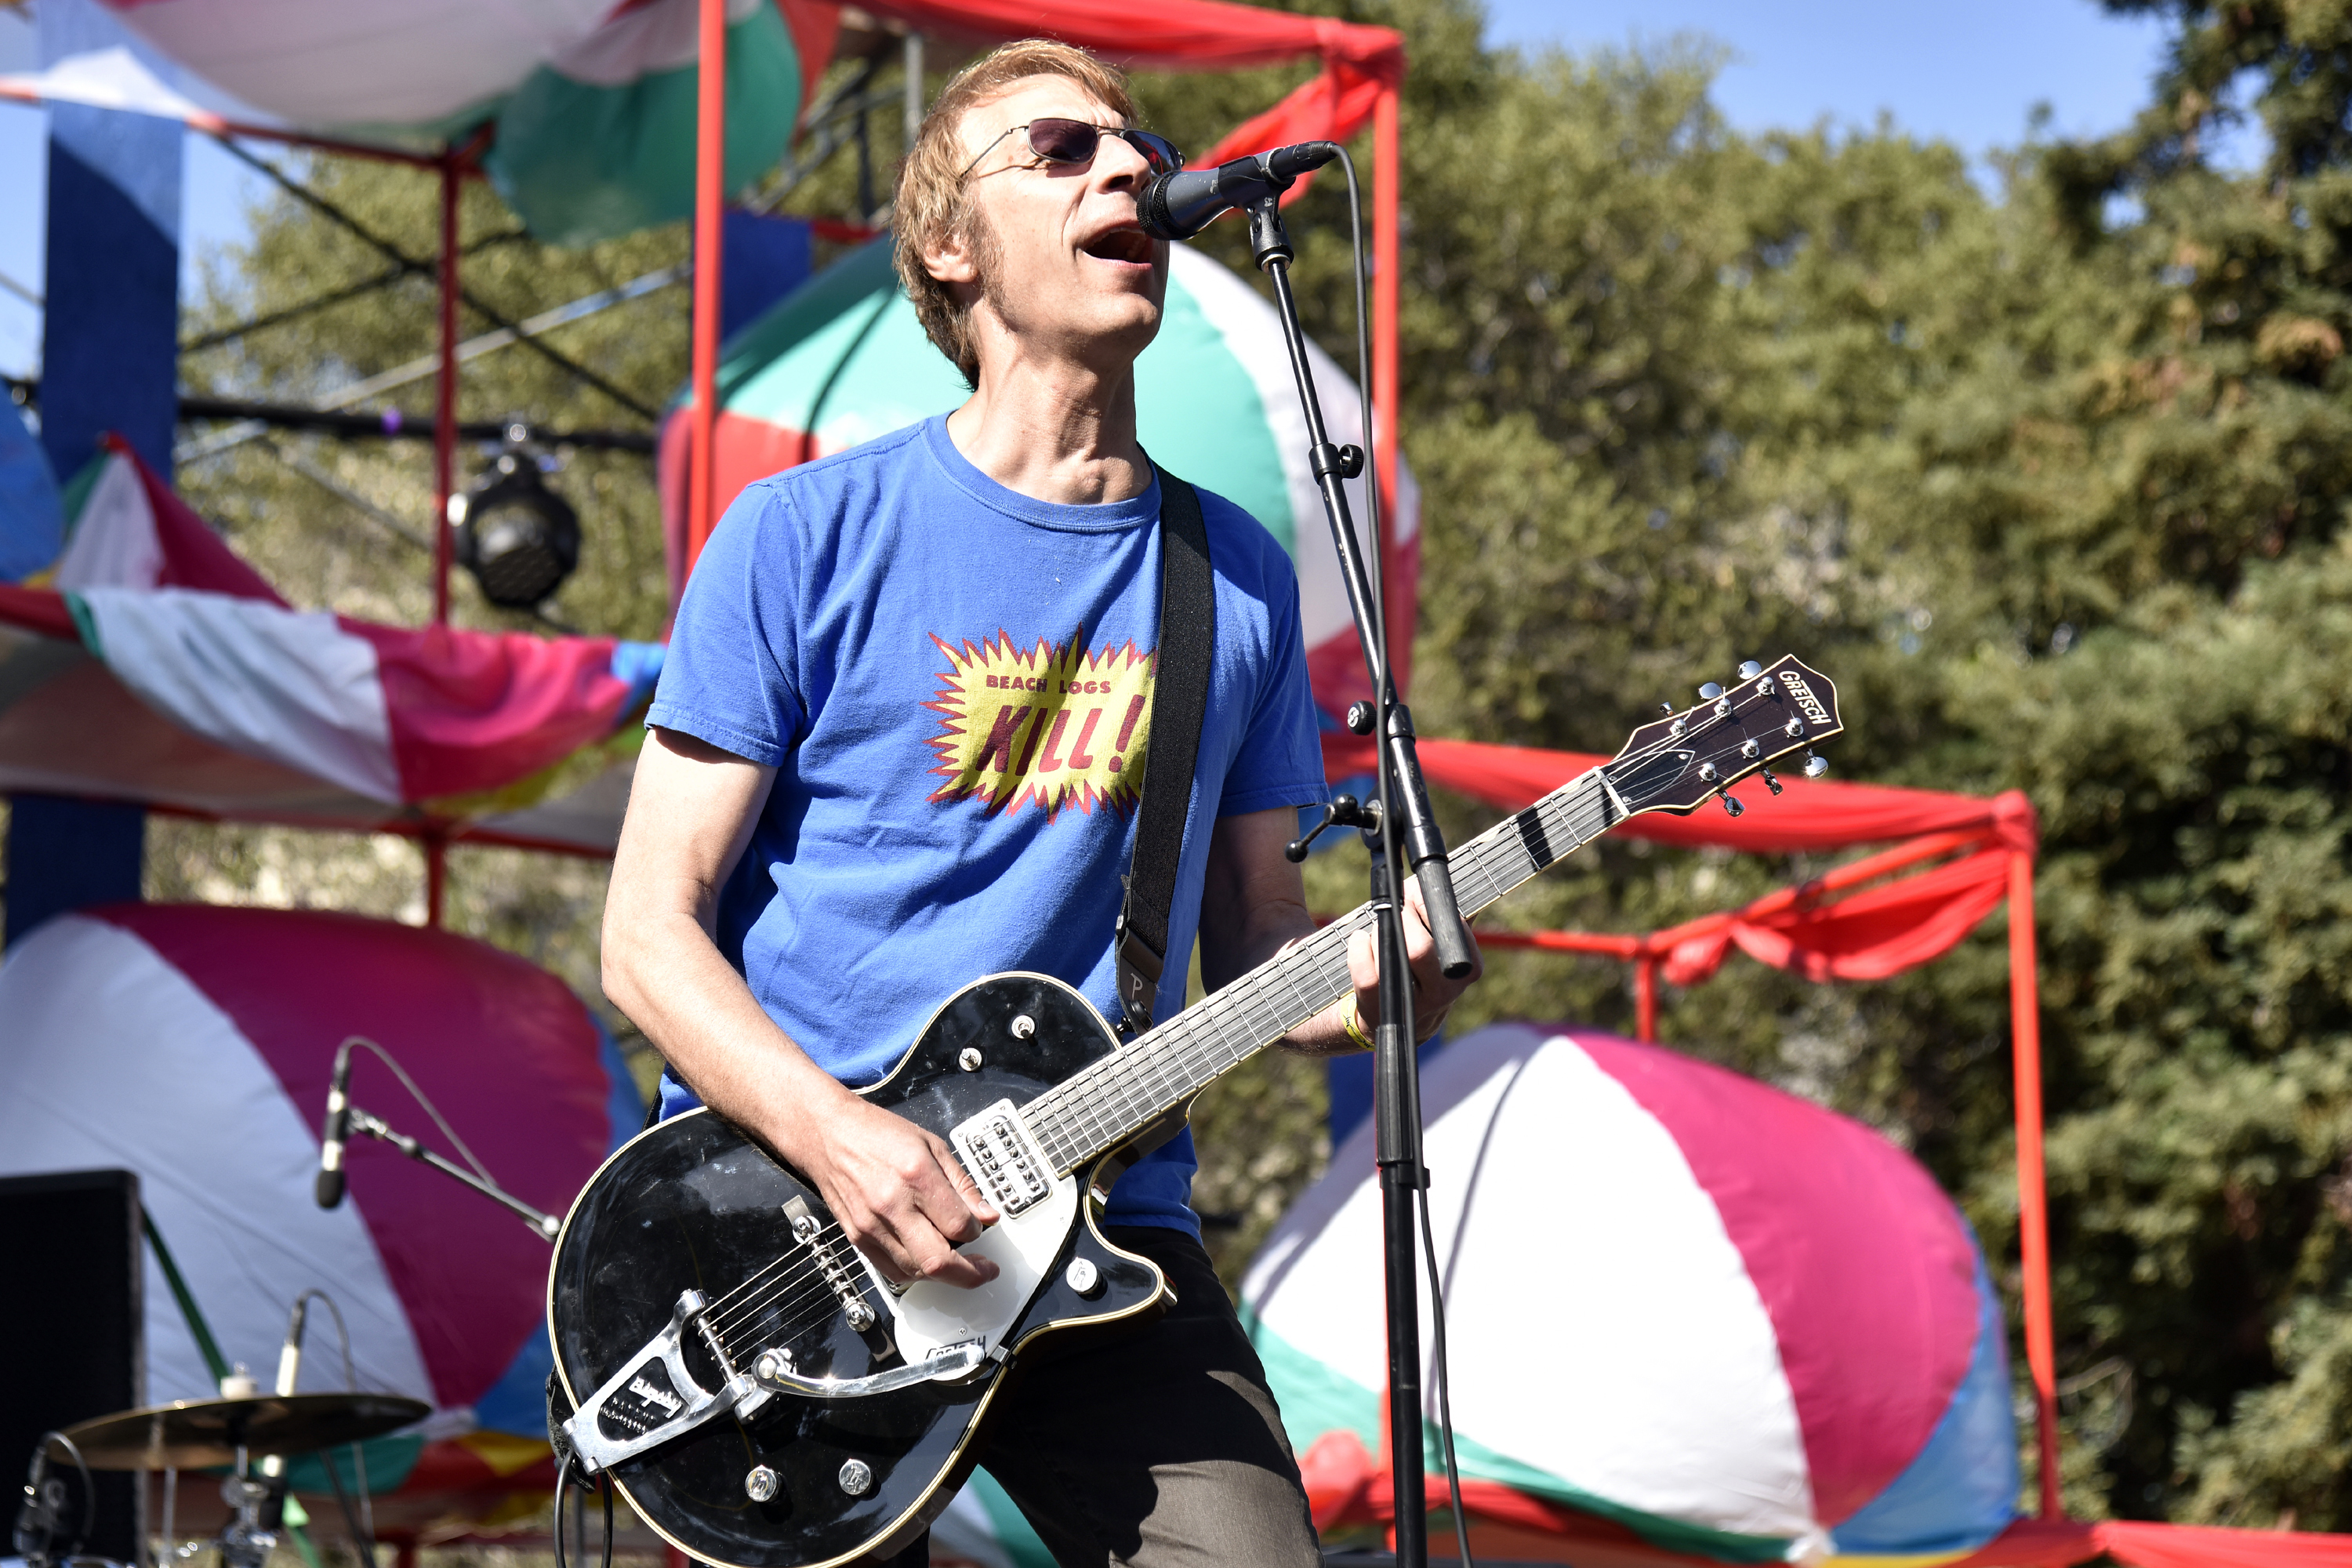 341968c5 OAKLAND, CA - JUNE 30: Mark Arm of Mudhoney performs during 2018 Burger  Boogaloo